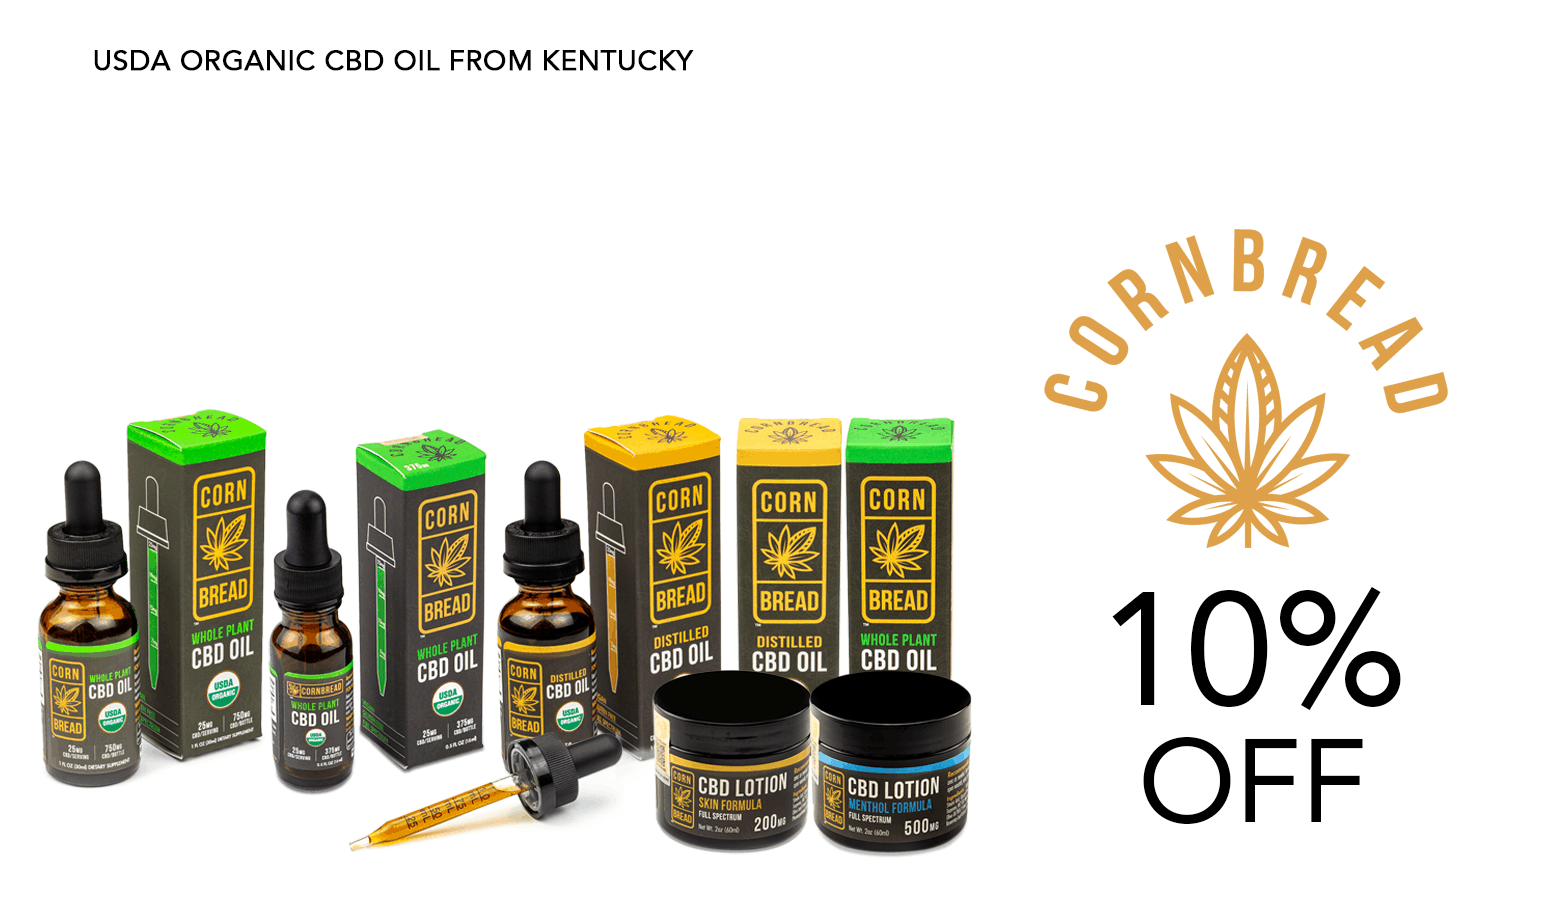 Cornbread Hemp CBD Coupon Code Discount